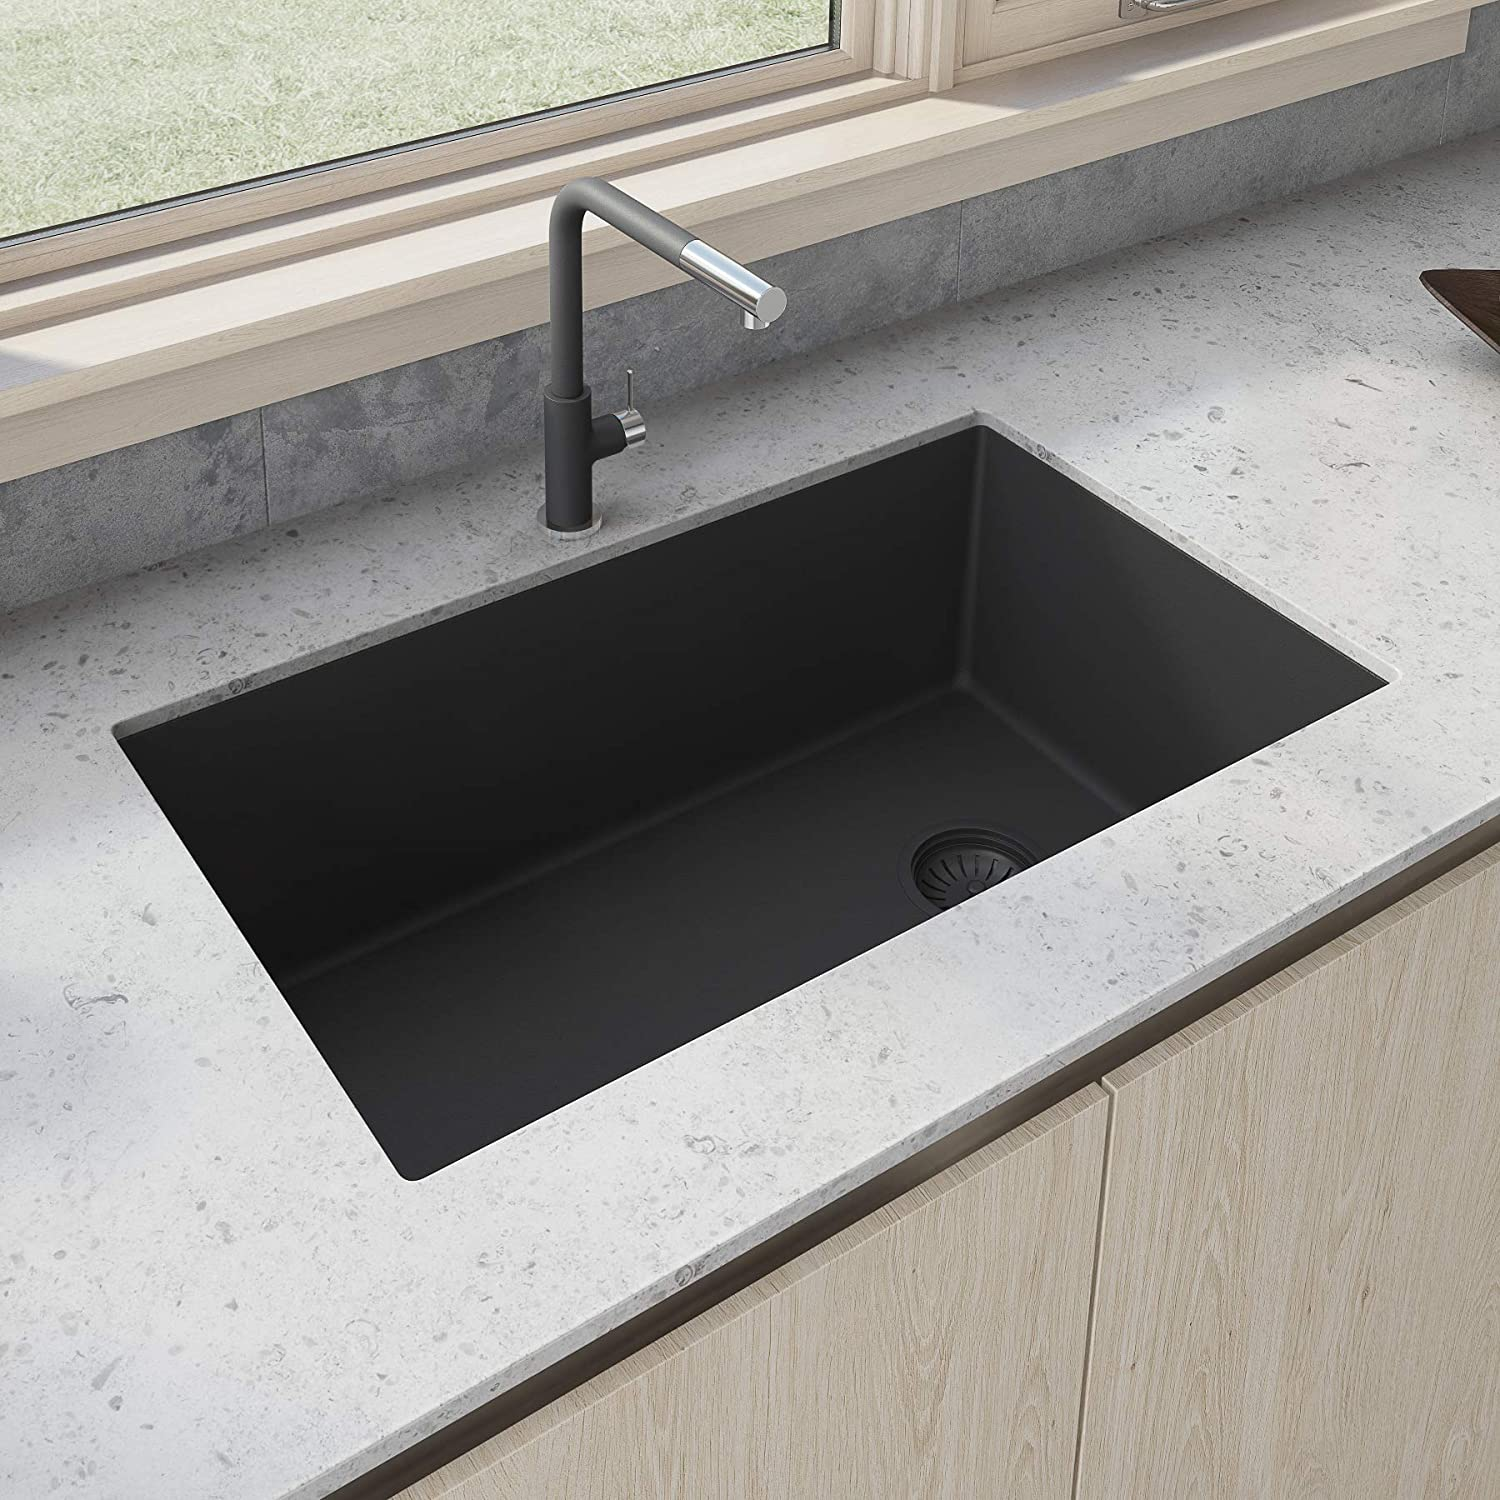 Ruvati 32 x 19 inch Undermount Granite Composite Single Bowl Kitchen Sink - Midnight Black - RVG2033BK